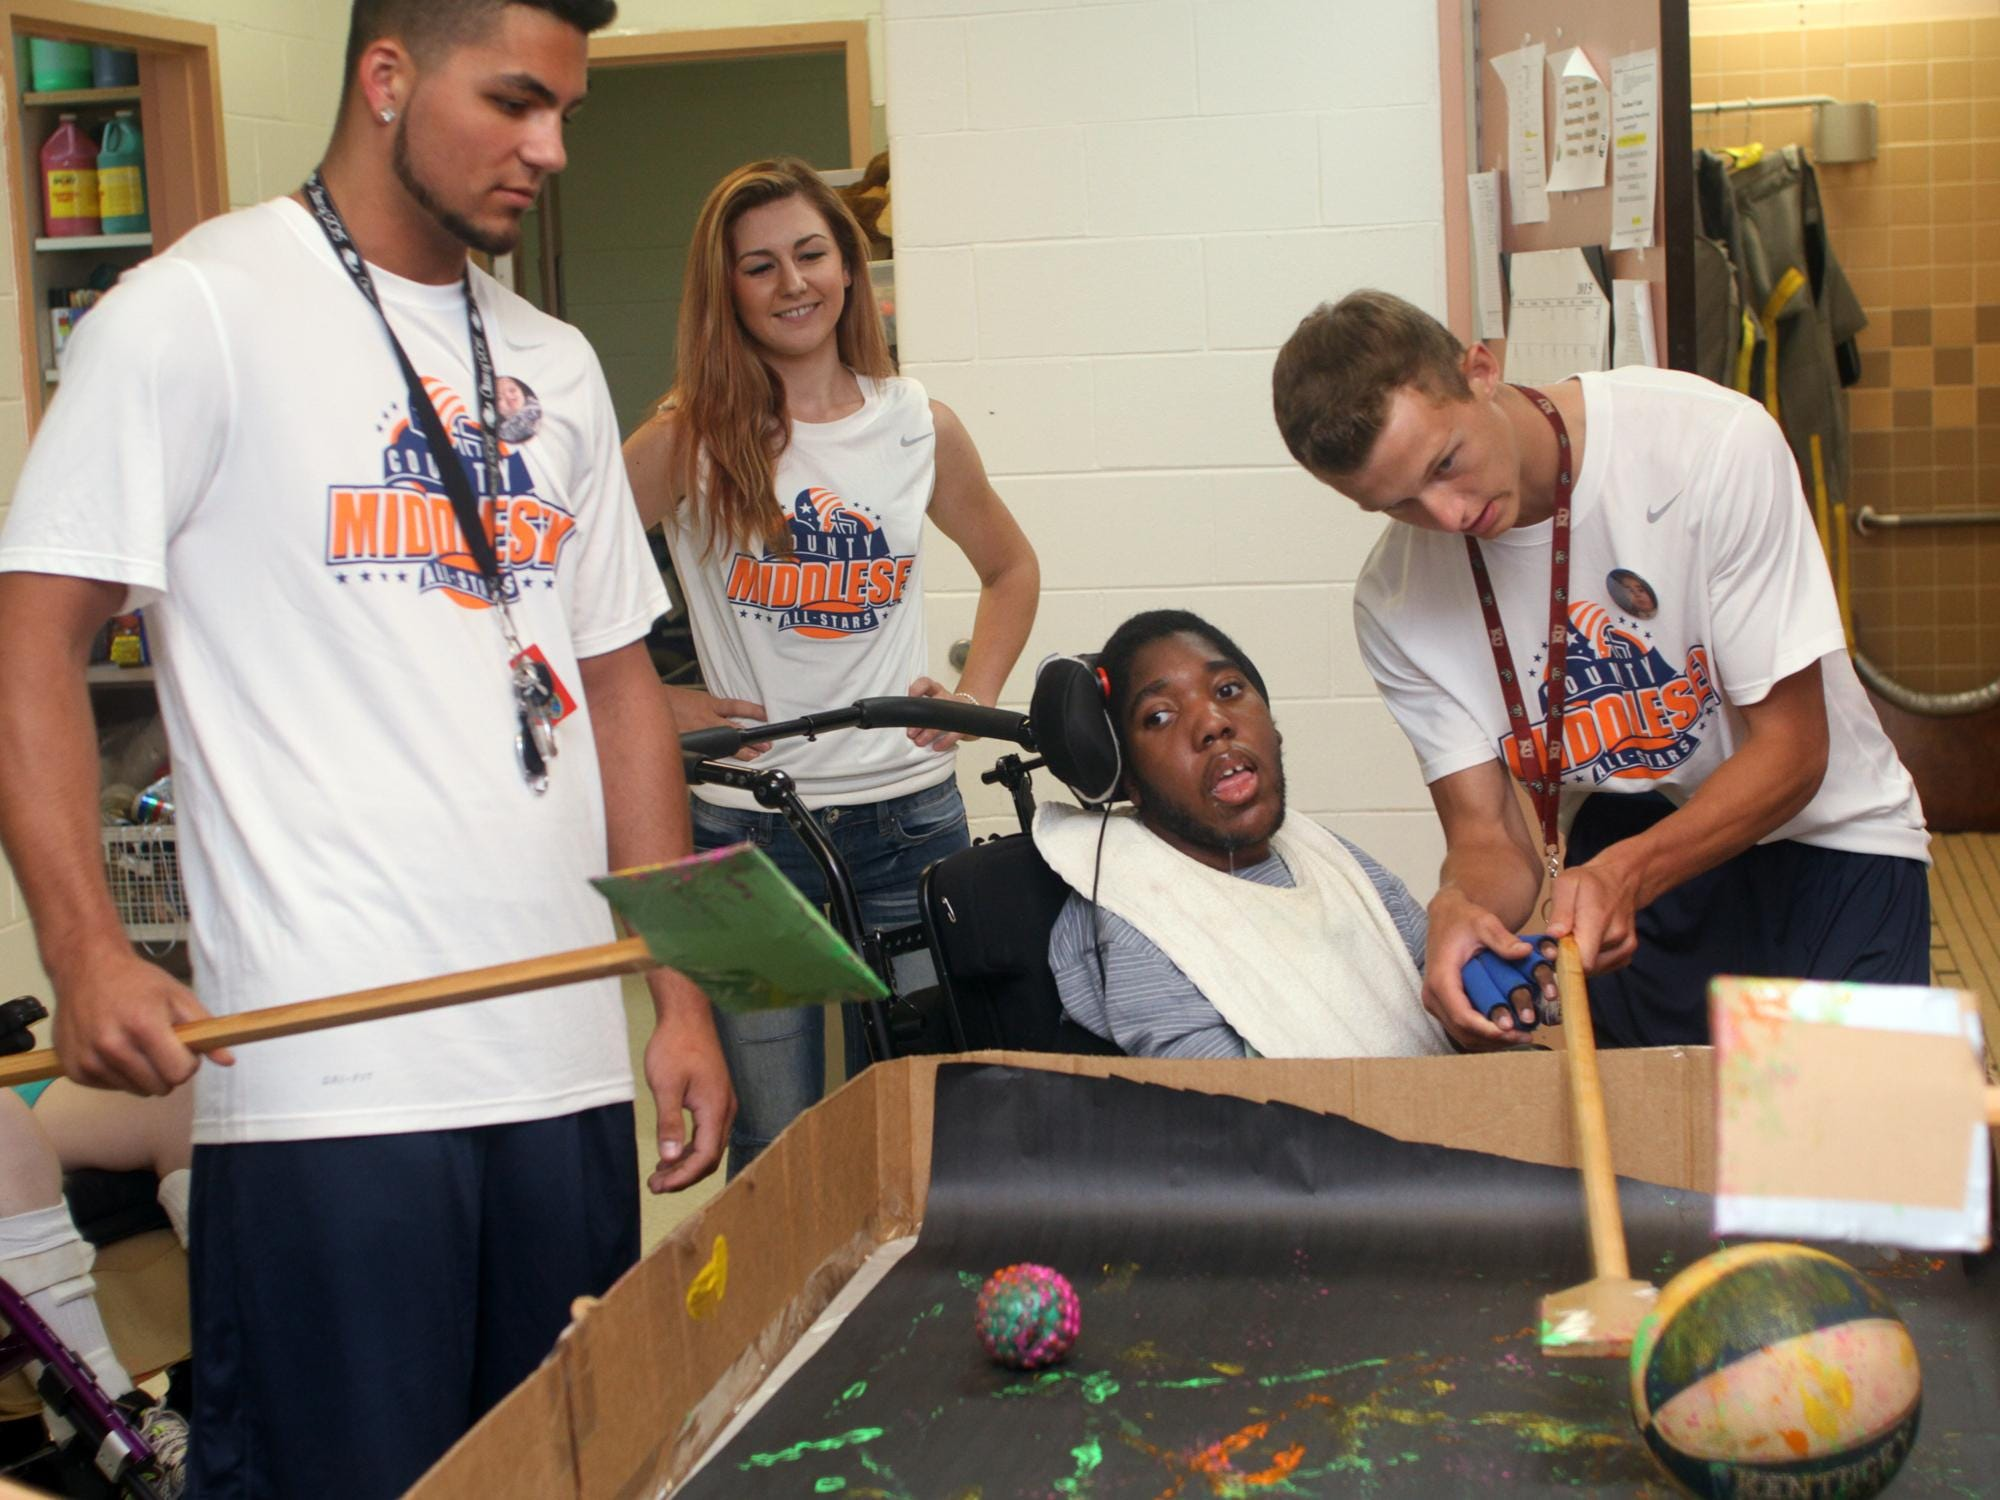 Snapple Bowl players Johnny Chillemi, left, and Tyler Valovcin, right, create artwork with Lakeview student Andrew (last name withheld), by rolling paint-covered balls during a visit to the Lakeview School in Edison on Monday. In the background is Snapple Bowl volunteer Adriana Kania.